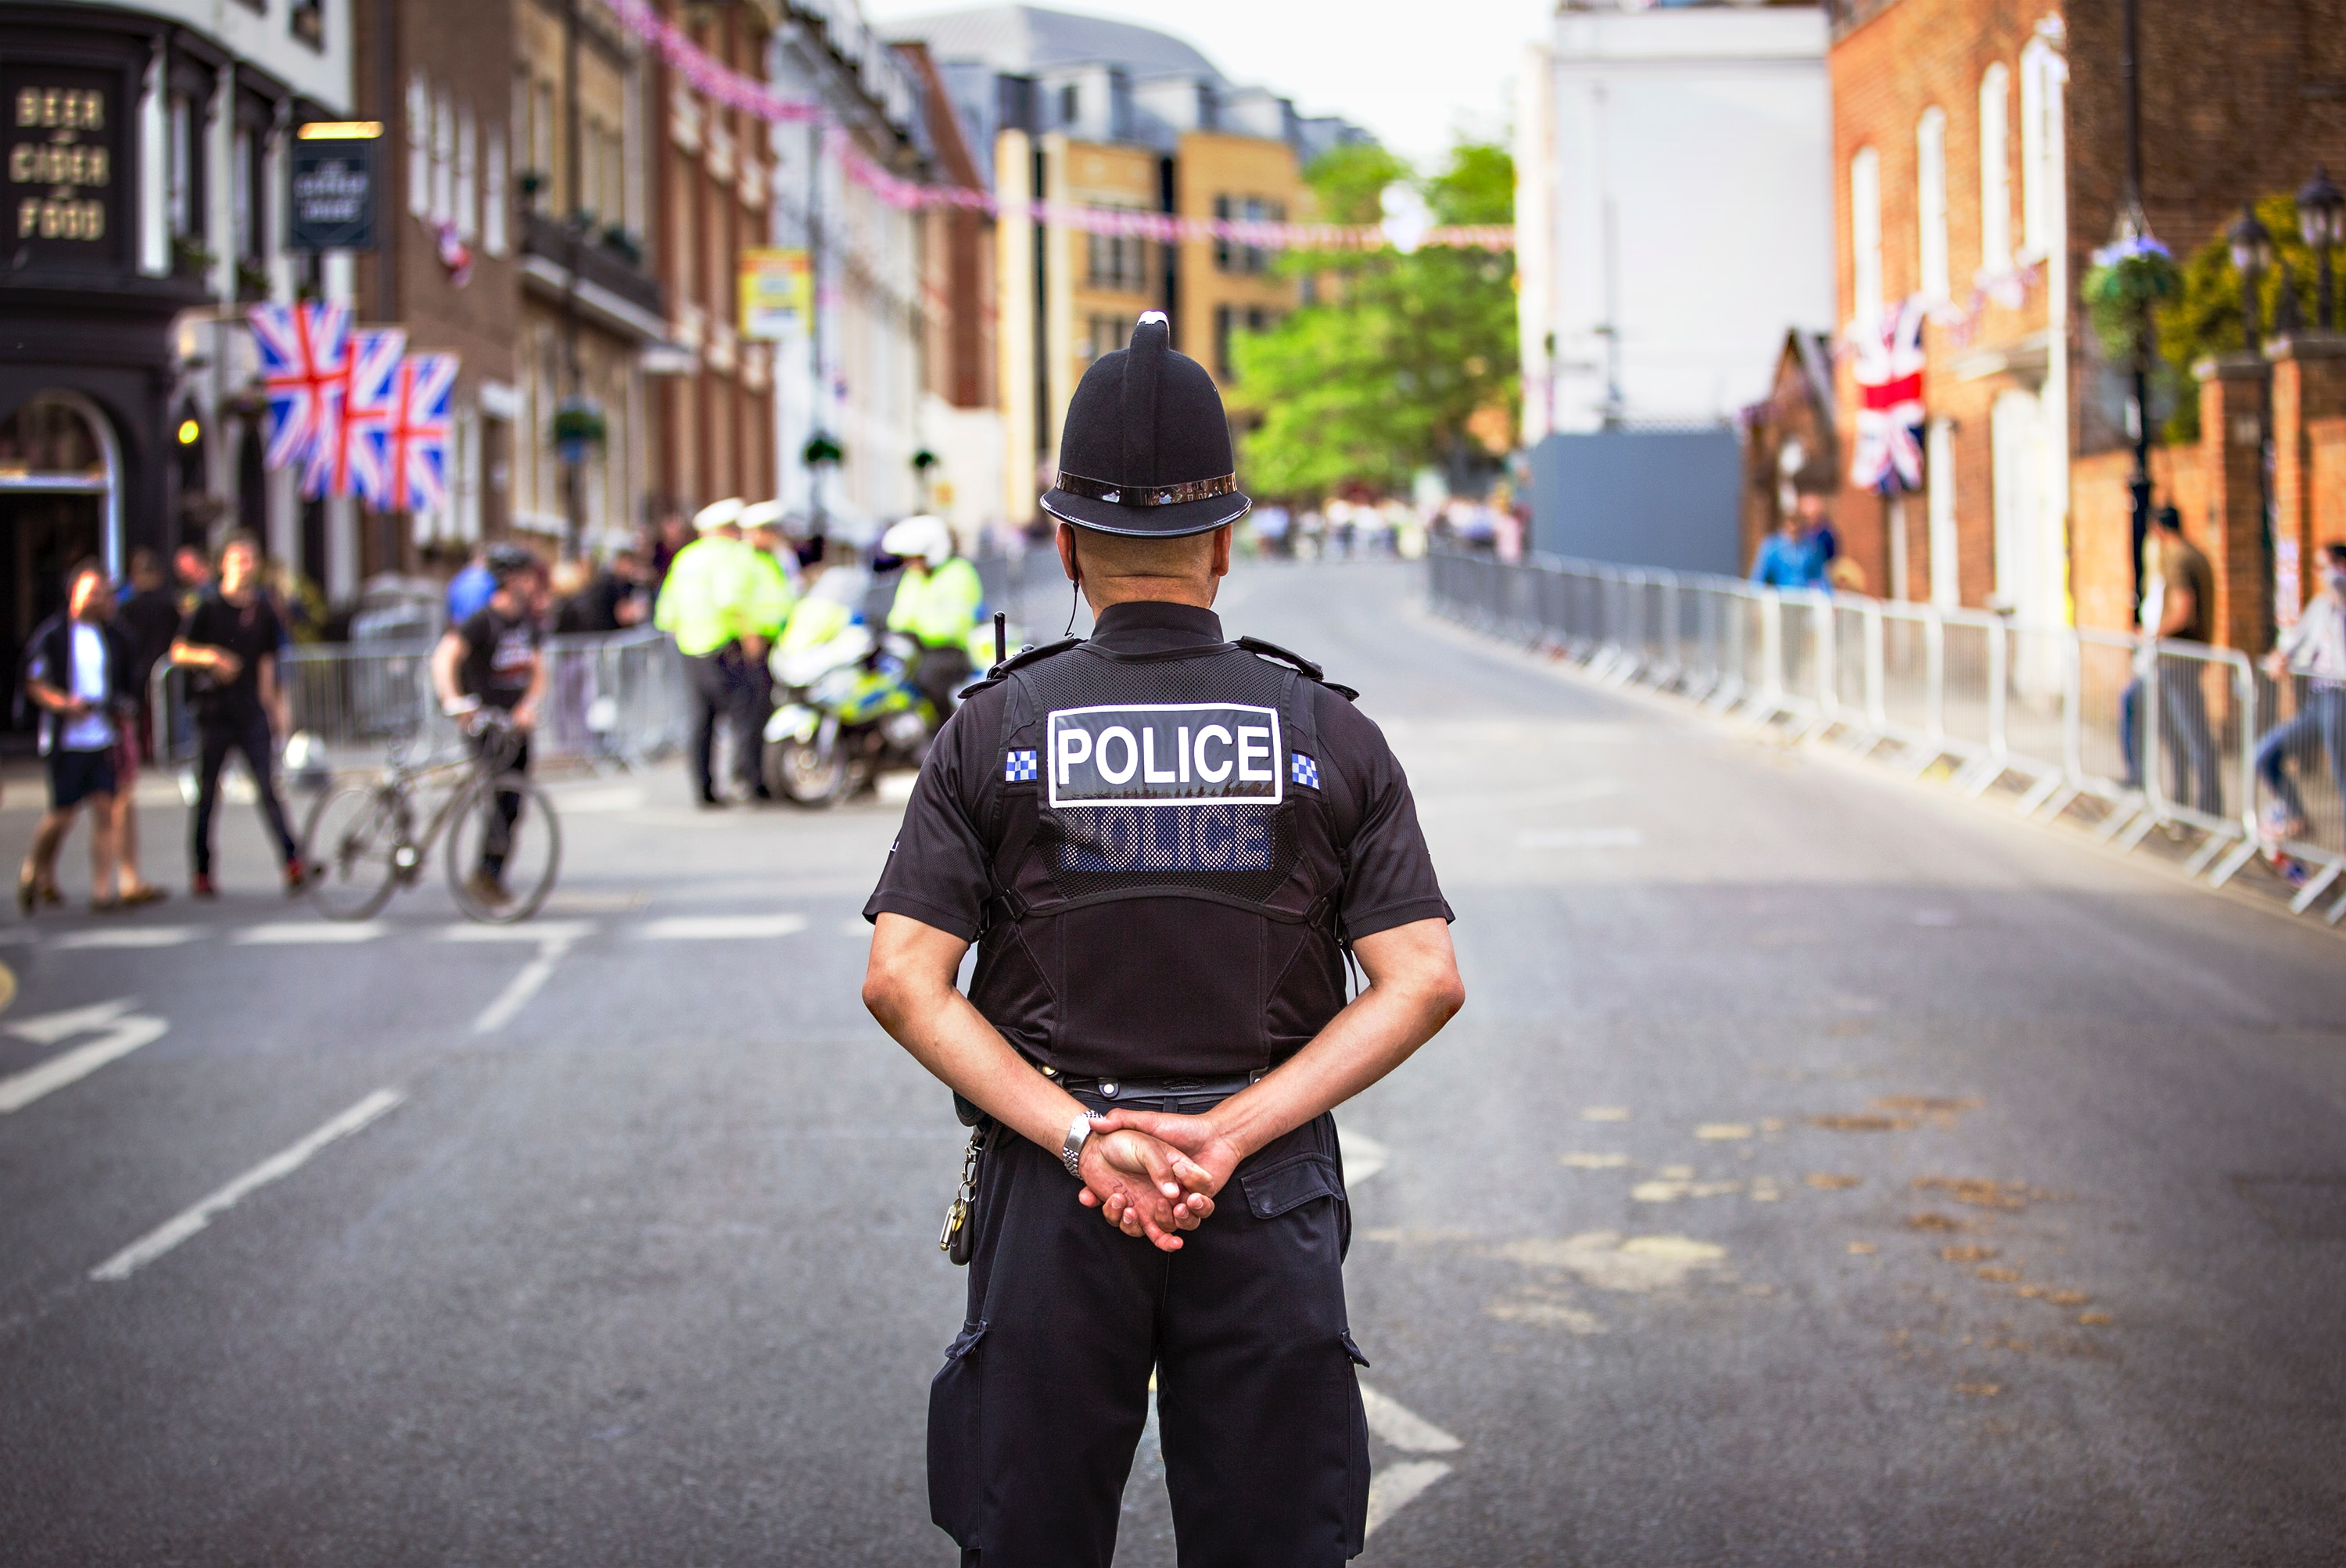 Policing - additional officers